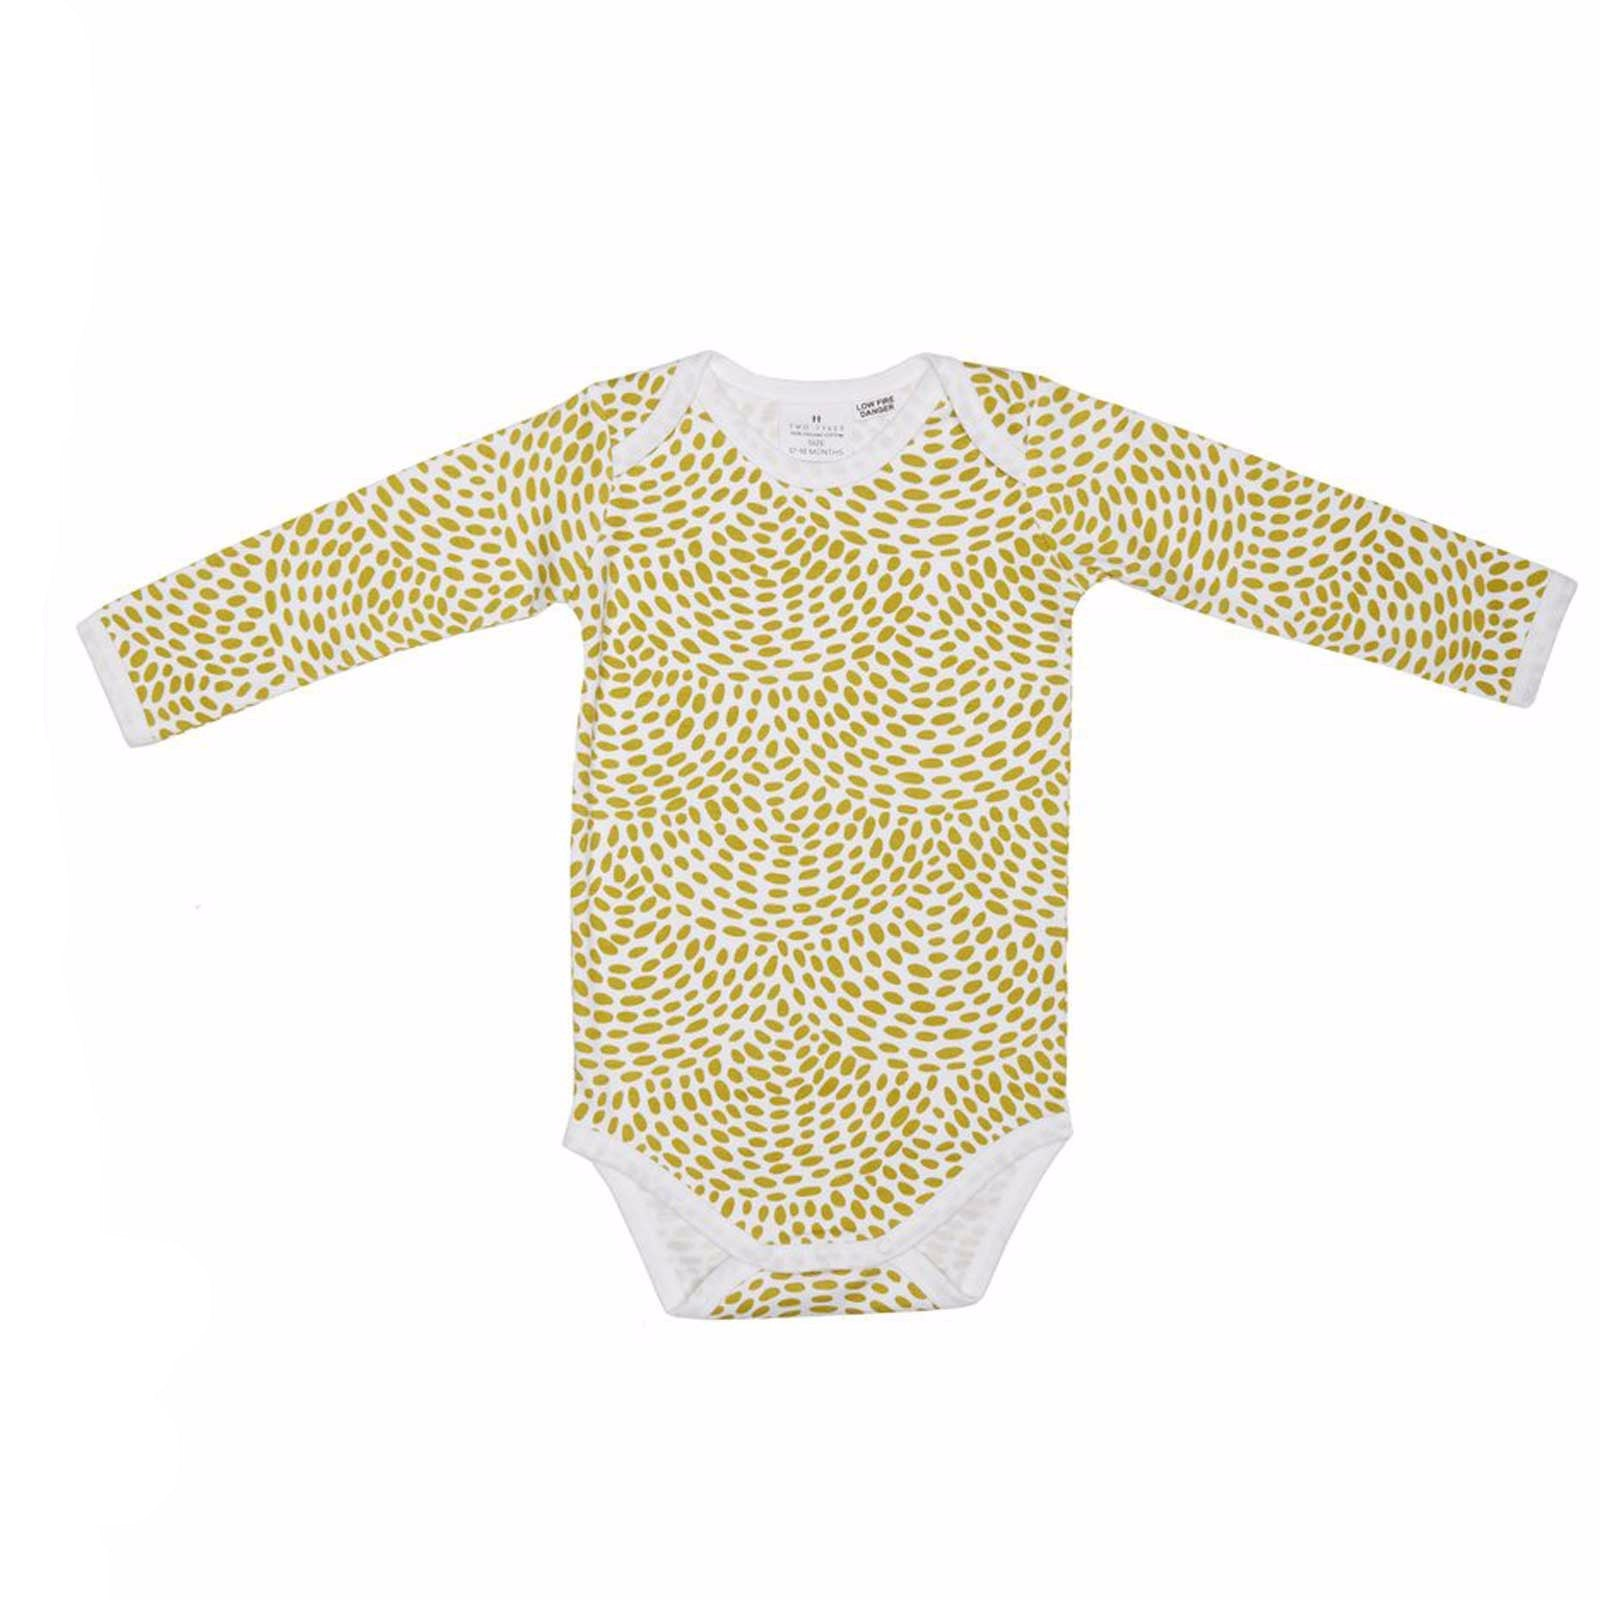 Two Tykes Long Sleeve Moss Onesie